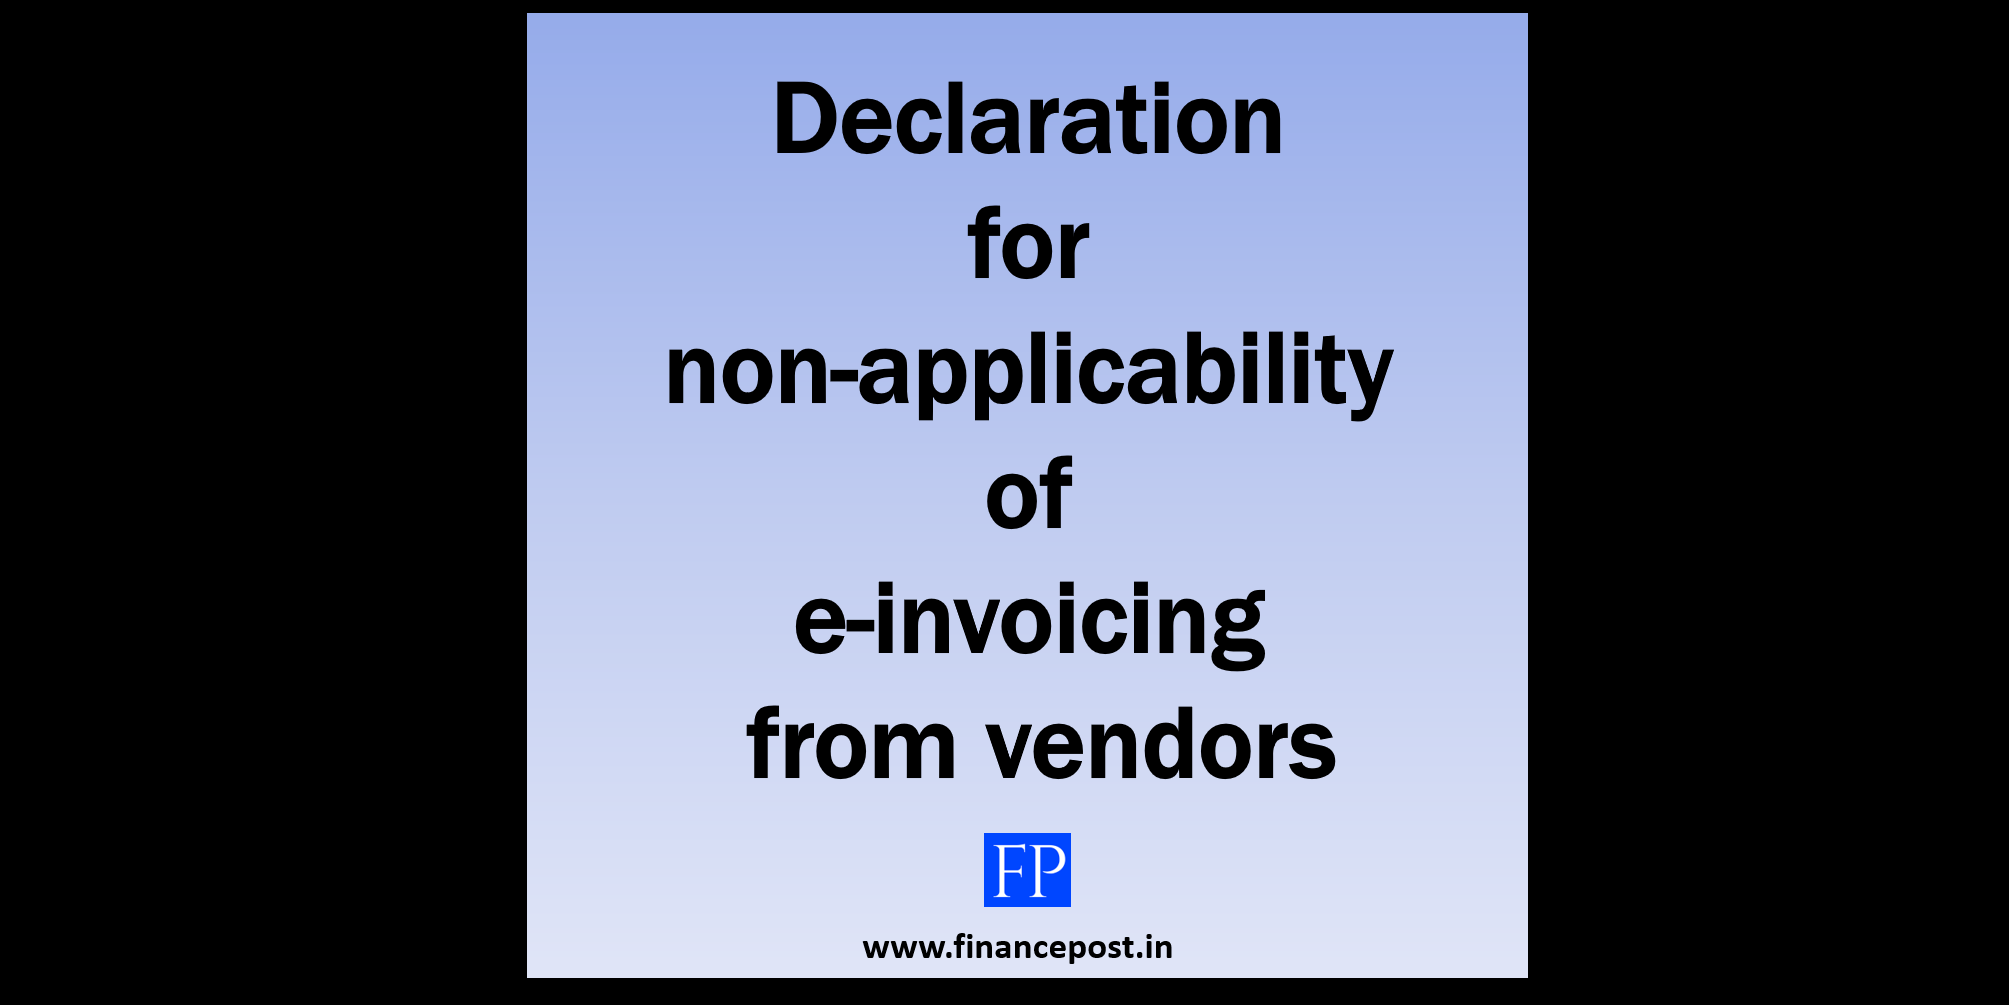 A declaration for non-applicability of e-invoicing from vendors